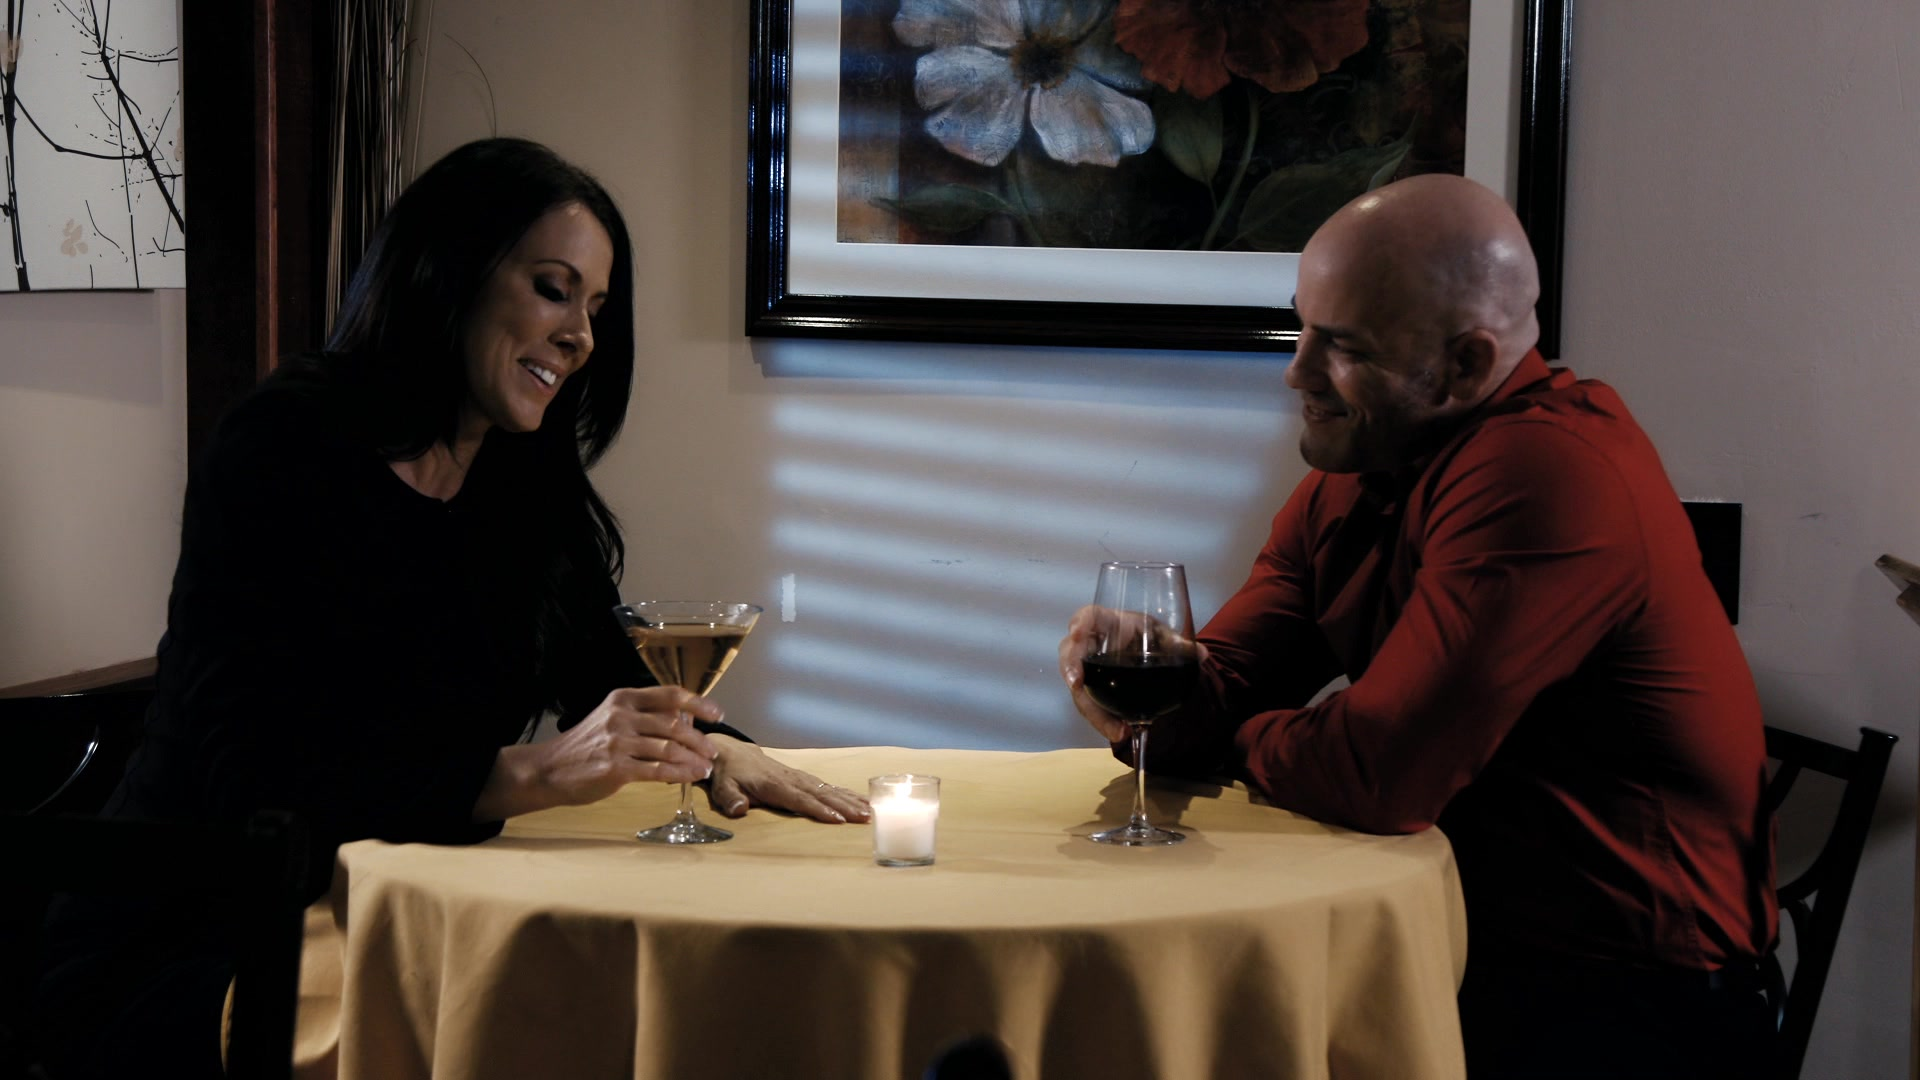 Scene with Derrick Pierce and Reagan Foxx - image 2 out of 20